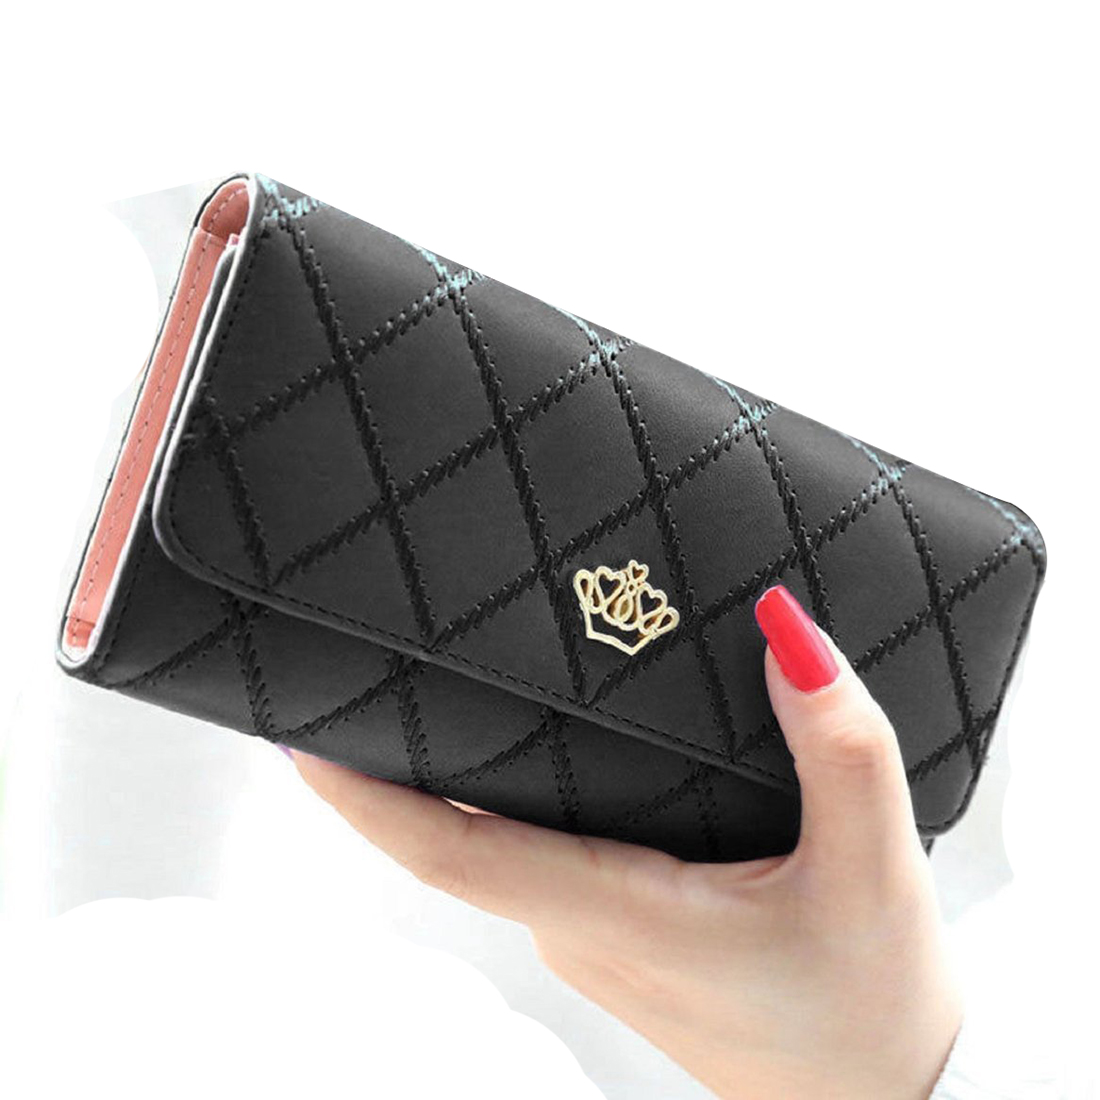 Fashion and New Women Lady Long Clutch Purse Bags Leather Bag Card Holder Wallet Black yuanyu free shipping 2017 hot new women bag real women clutches pearl fish skin wallet long fashion leisure women wallet purse